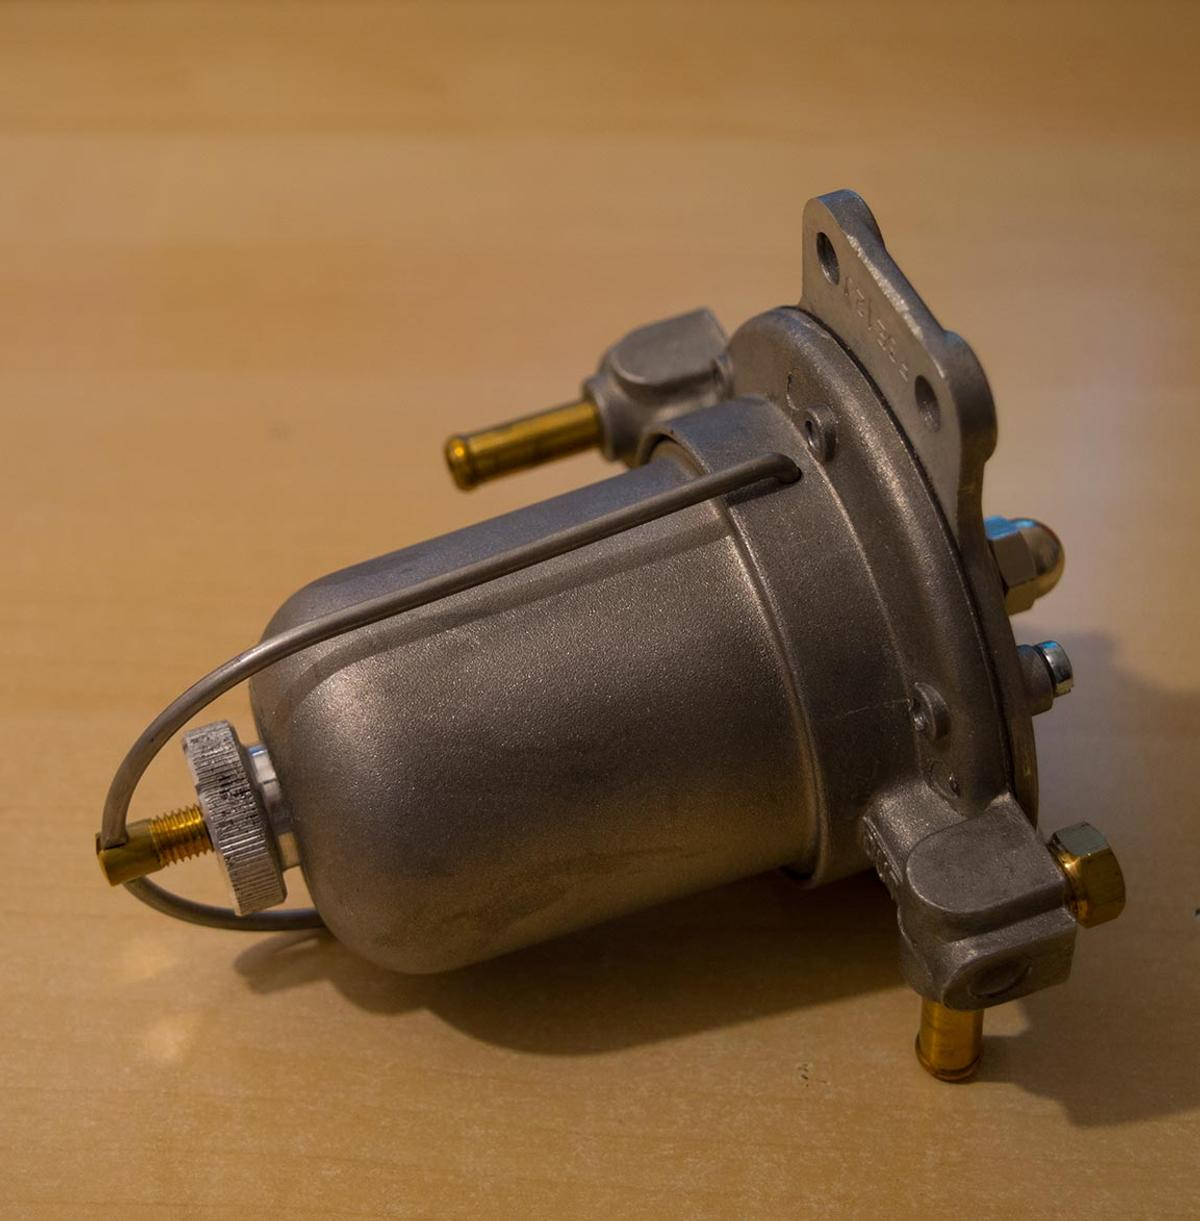 hight resolution of filter king fuel regulator filter with pressu in w2 london for 45 00 for sale shpock